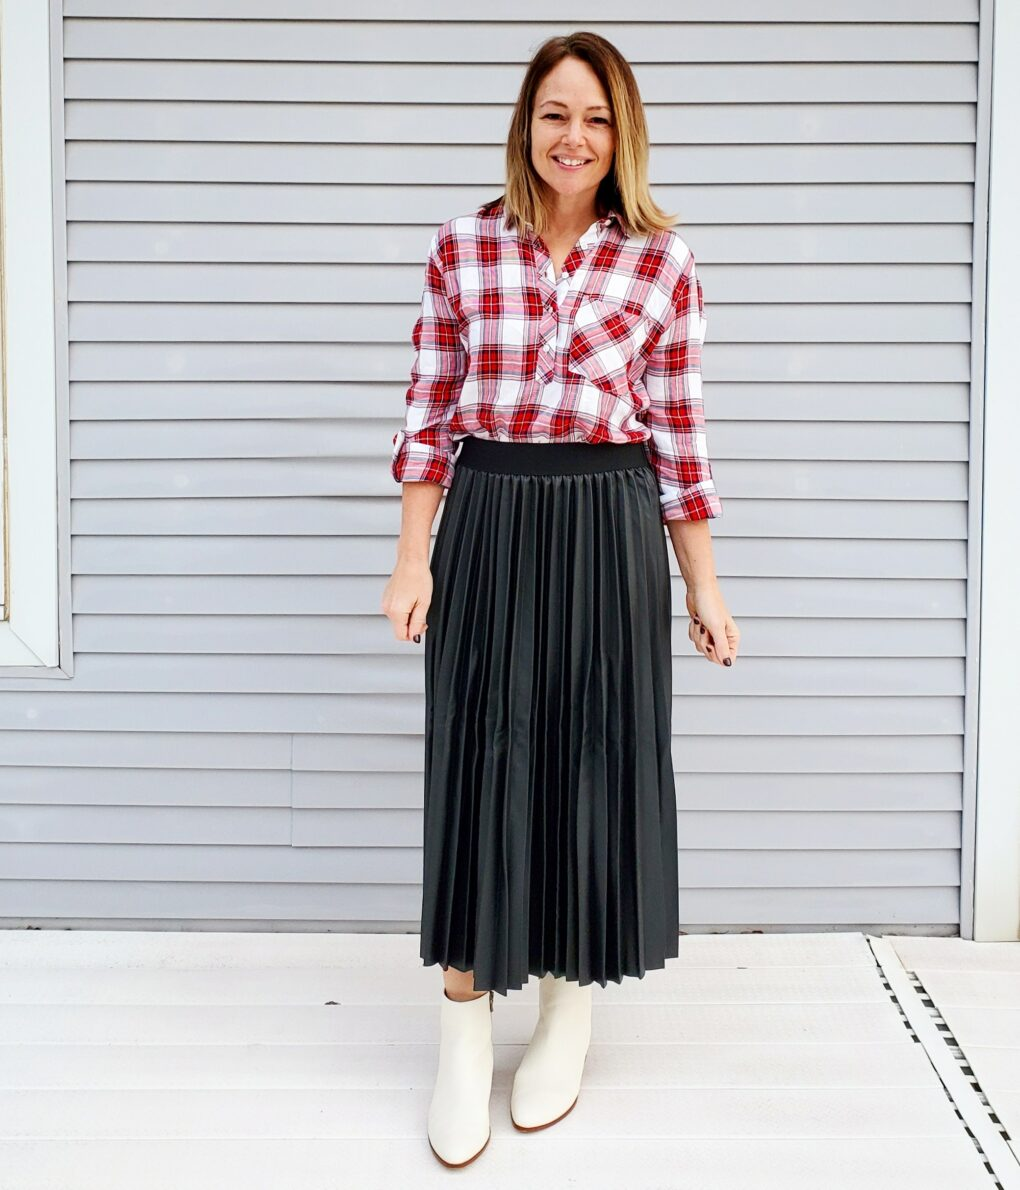 Casual holiday outfit idea with Christmas plaid shirt, faux leather pleated skirt, and white boots